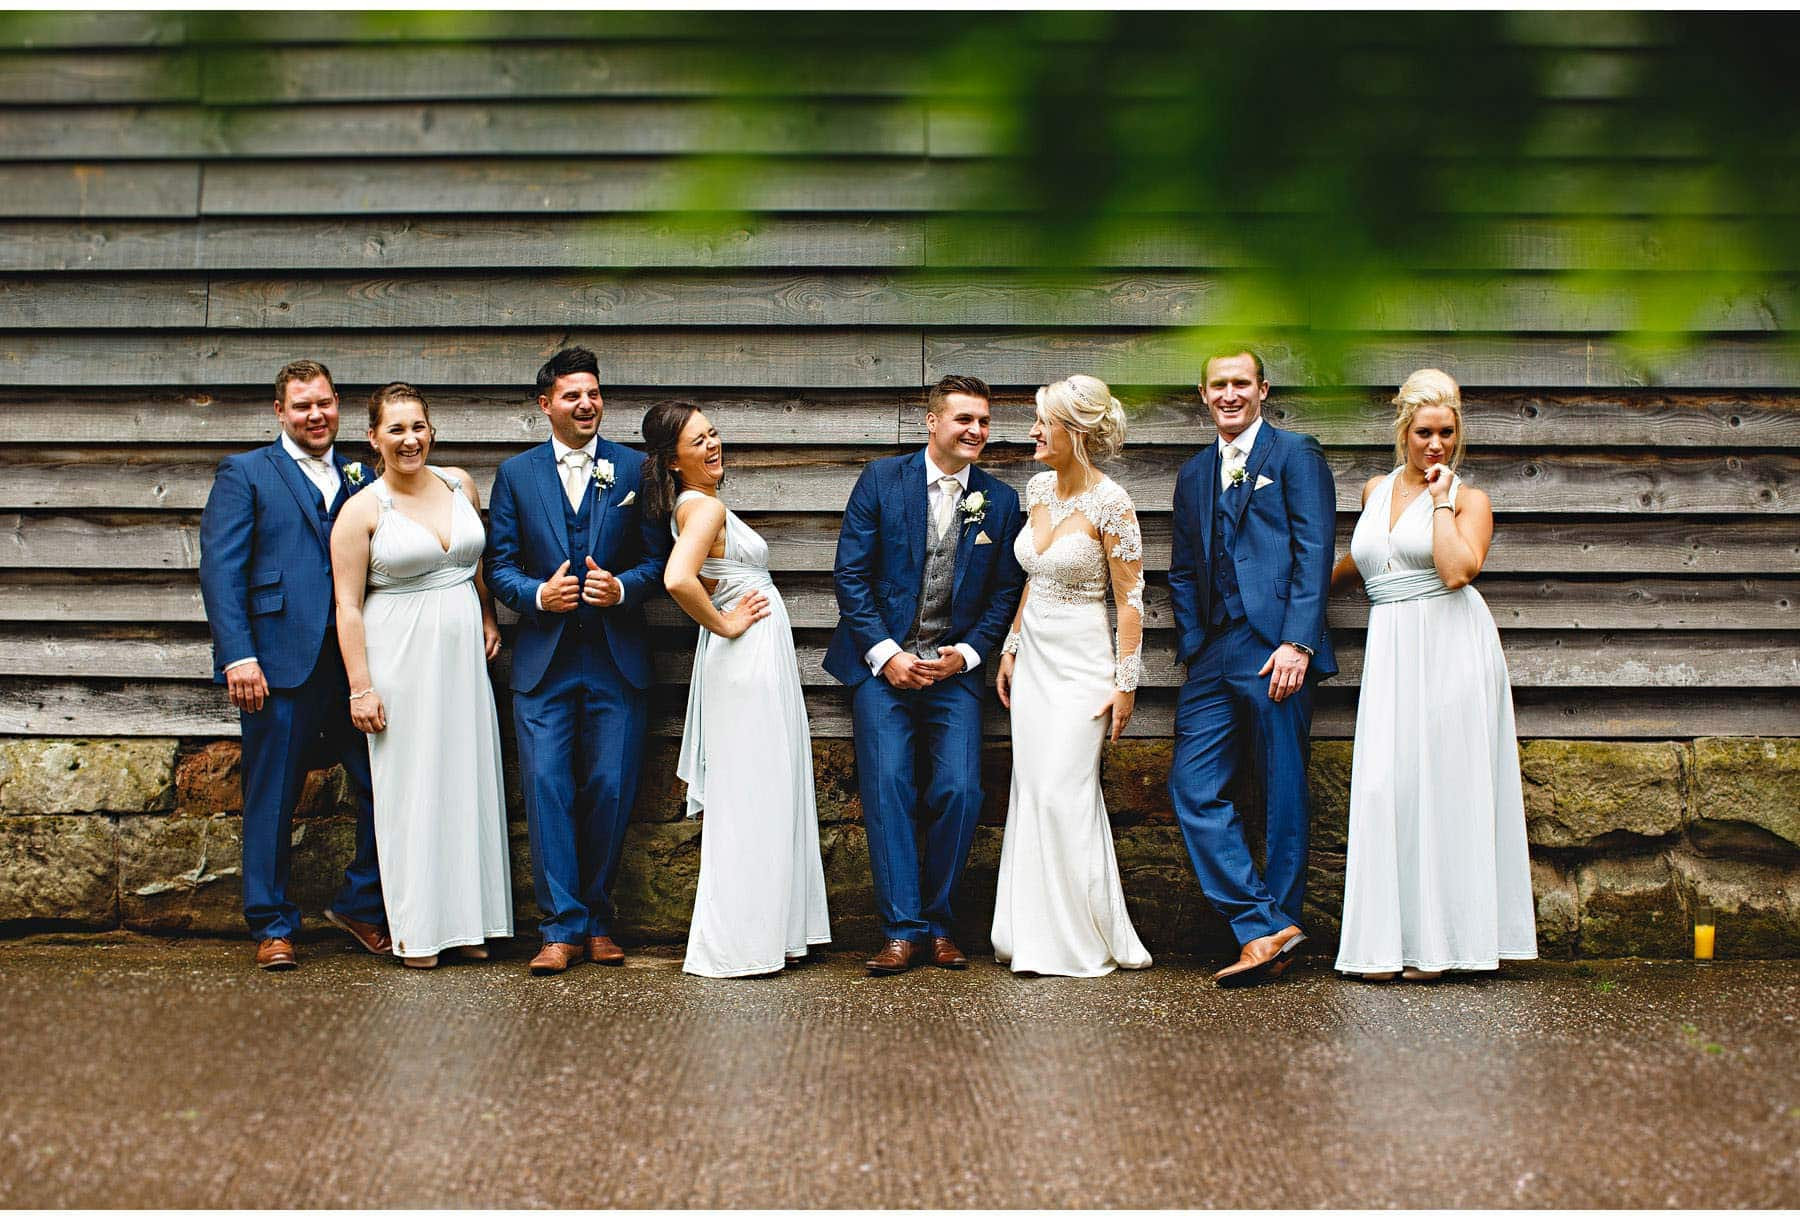 The bridal party leaning against the barn